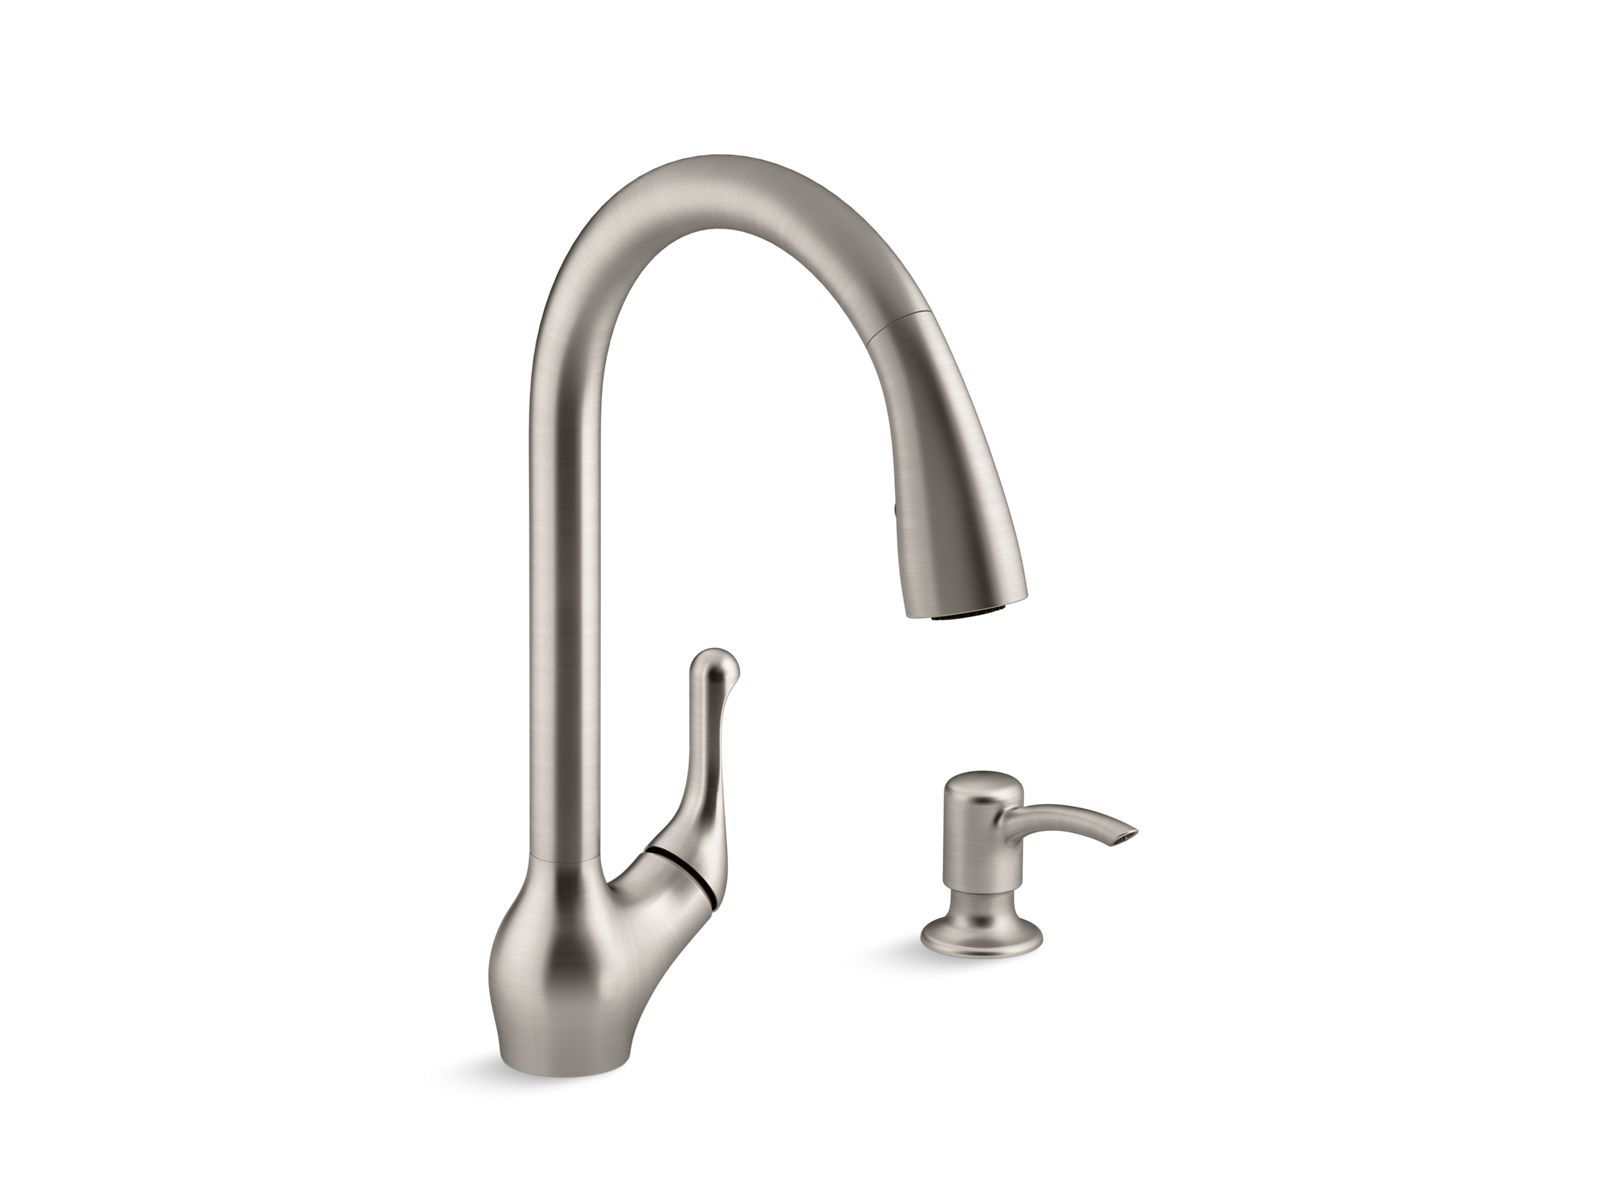 The Faucet Features A High Arch Swing Spout Pull Down Touch Control Sprayhead With Sweep Spray And Soap Dispenser